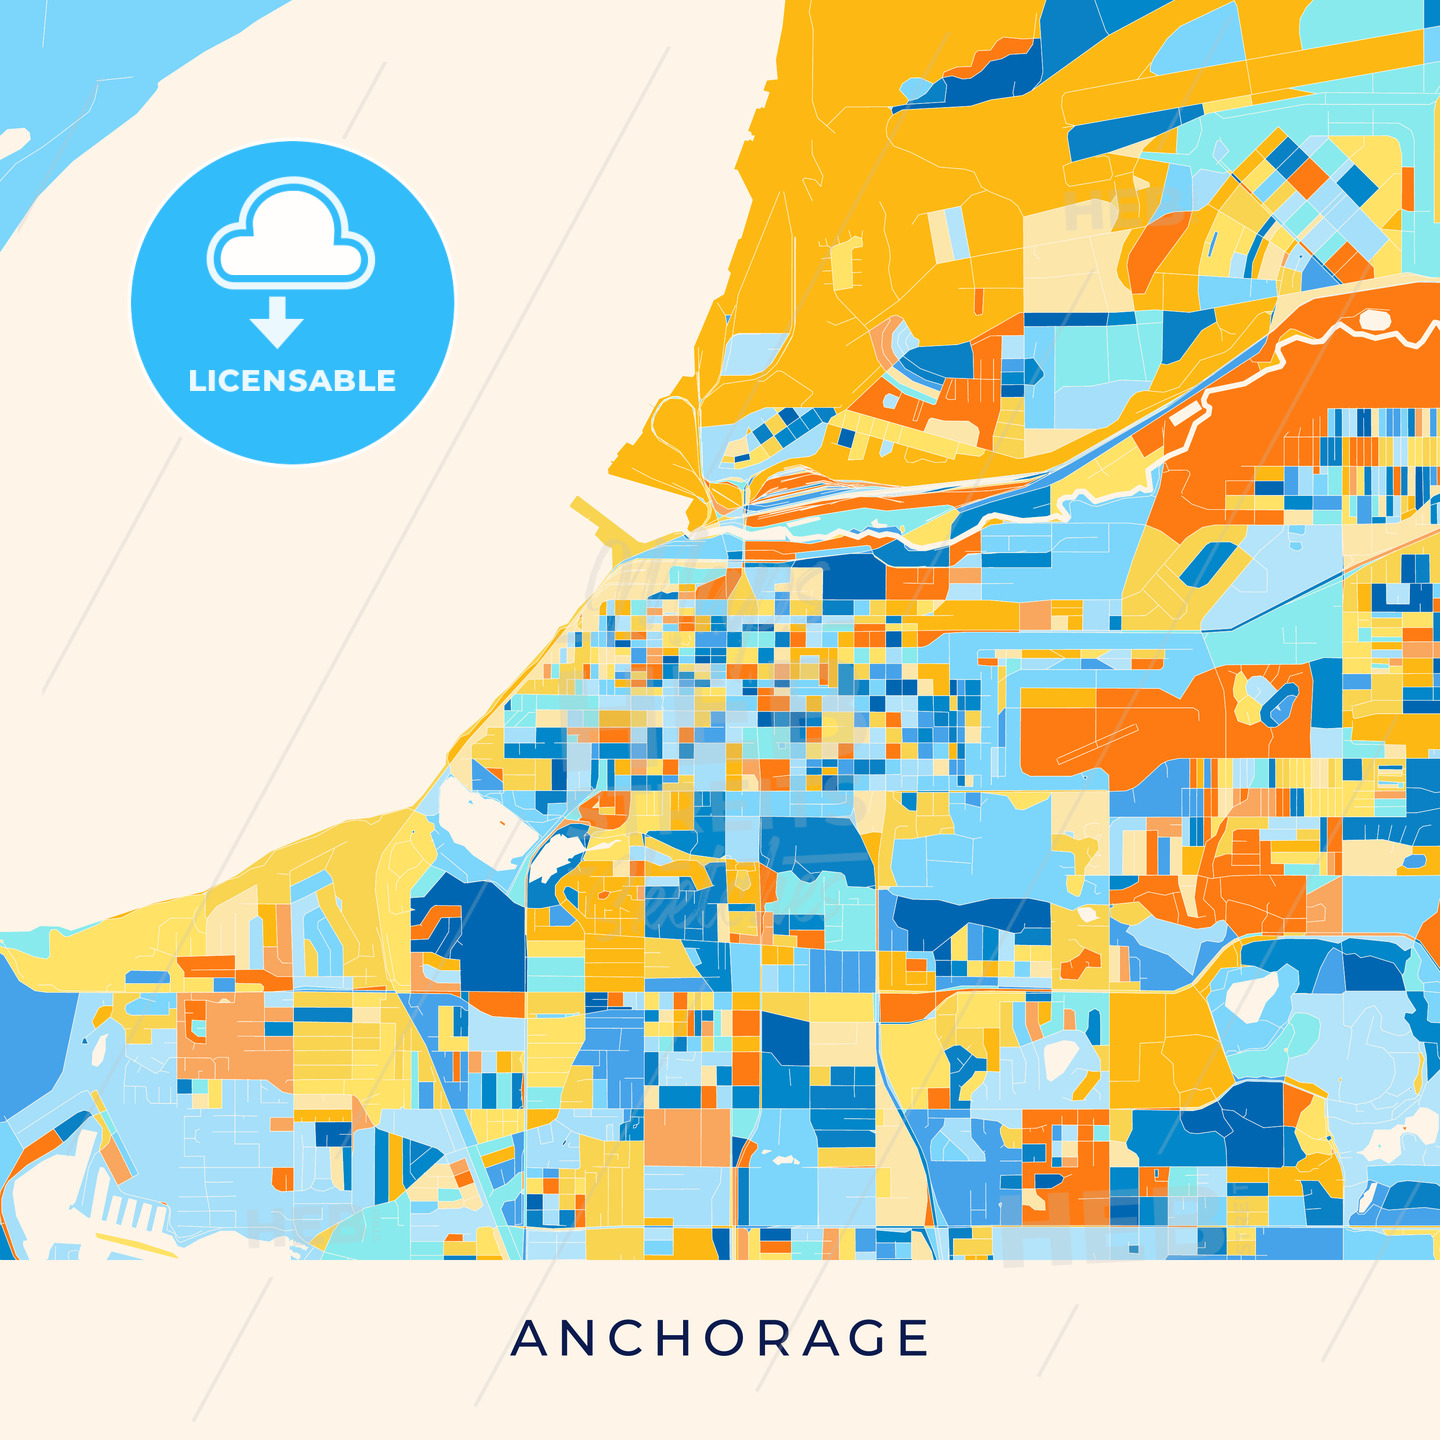 Anchorage colorful map poster template